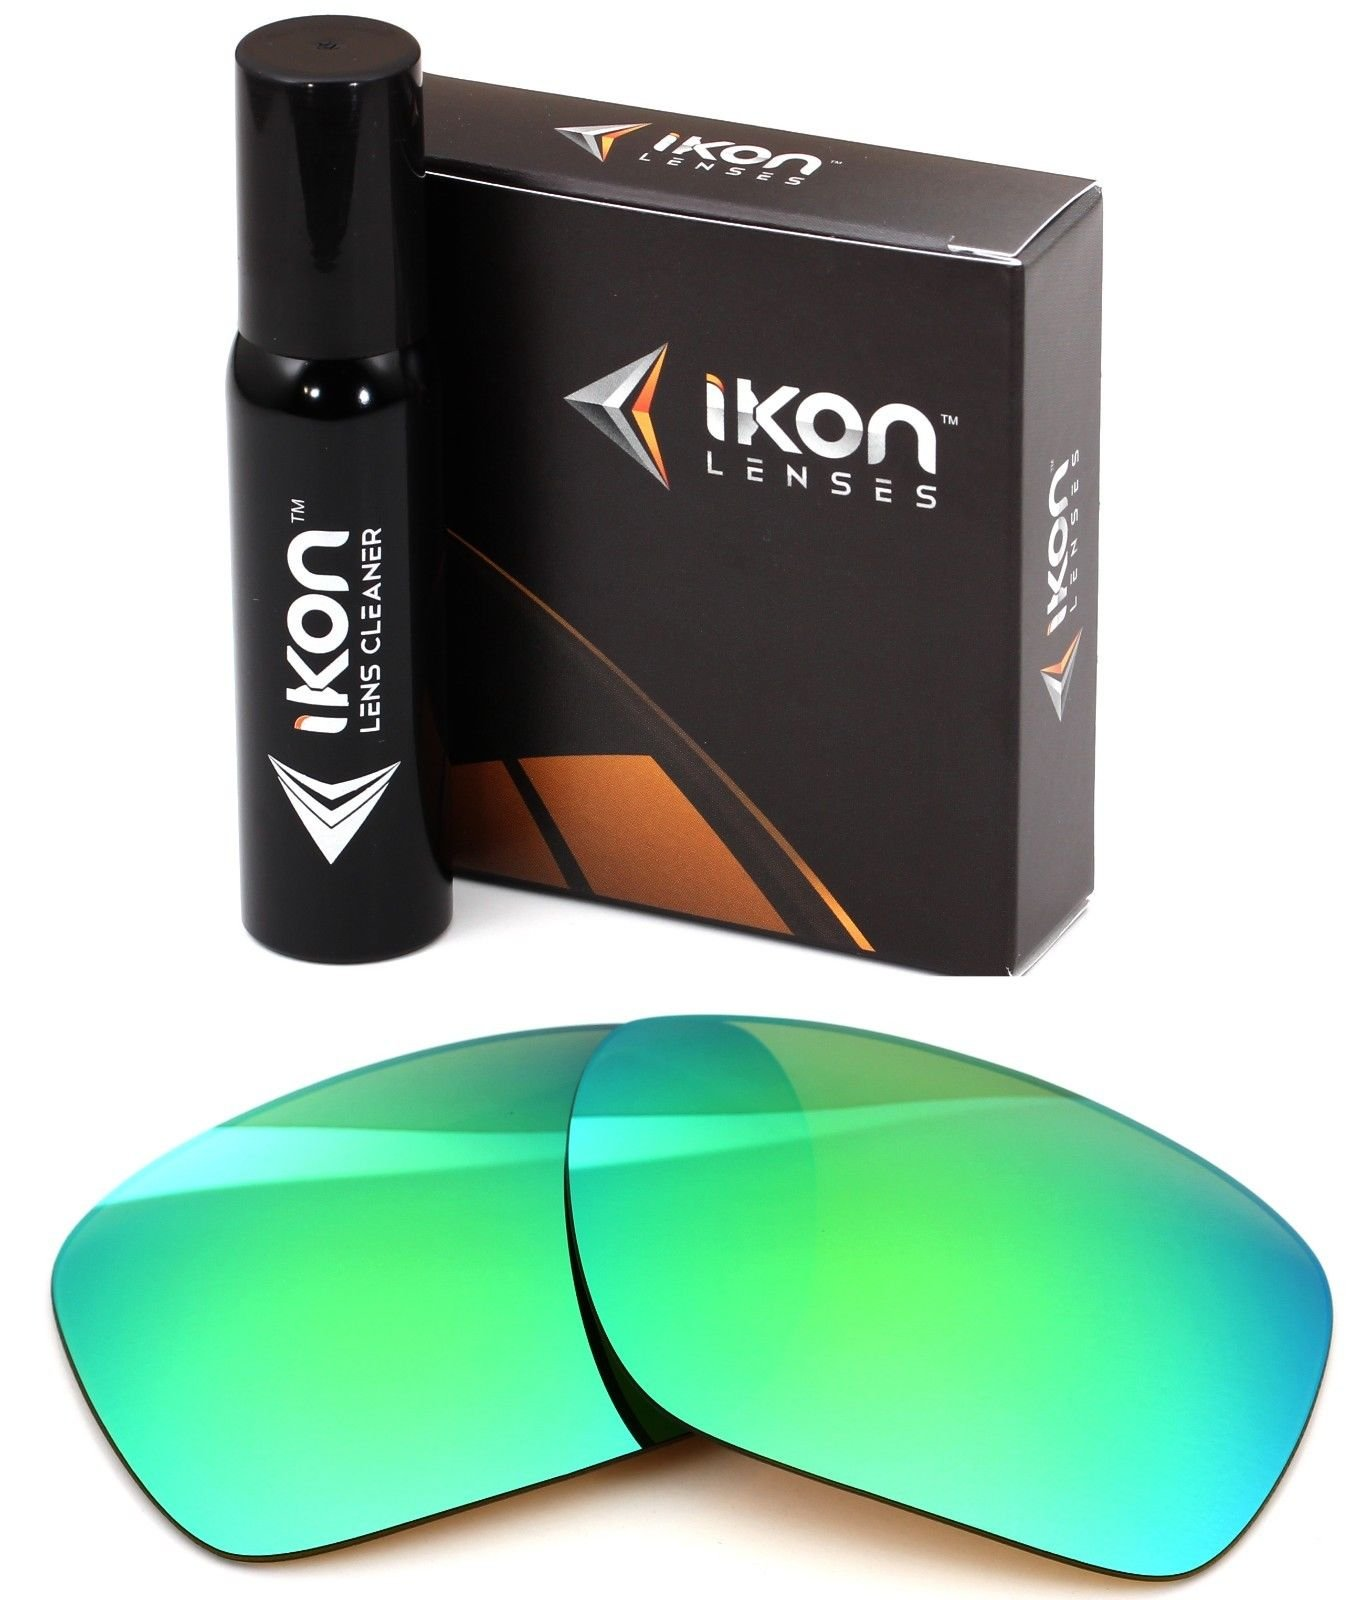 Polarized Ikon Iridium Replacement Lenses For Costa Del Mar Blackfin Sunglasses - Emerald Green Mirror by Ikon Lenses